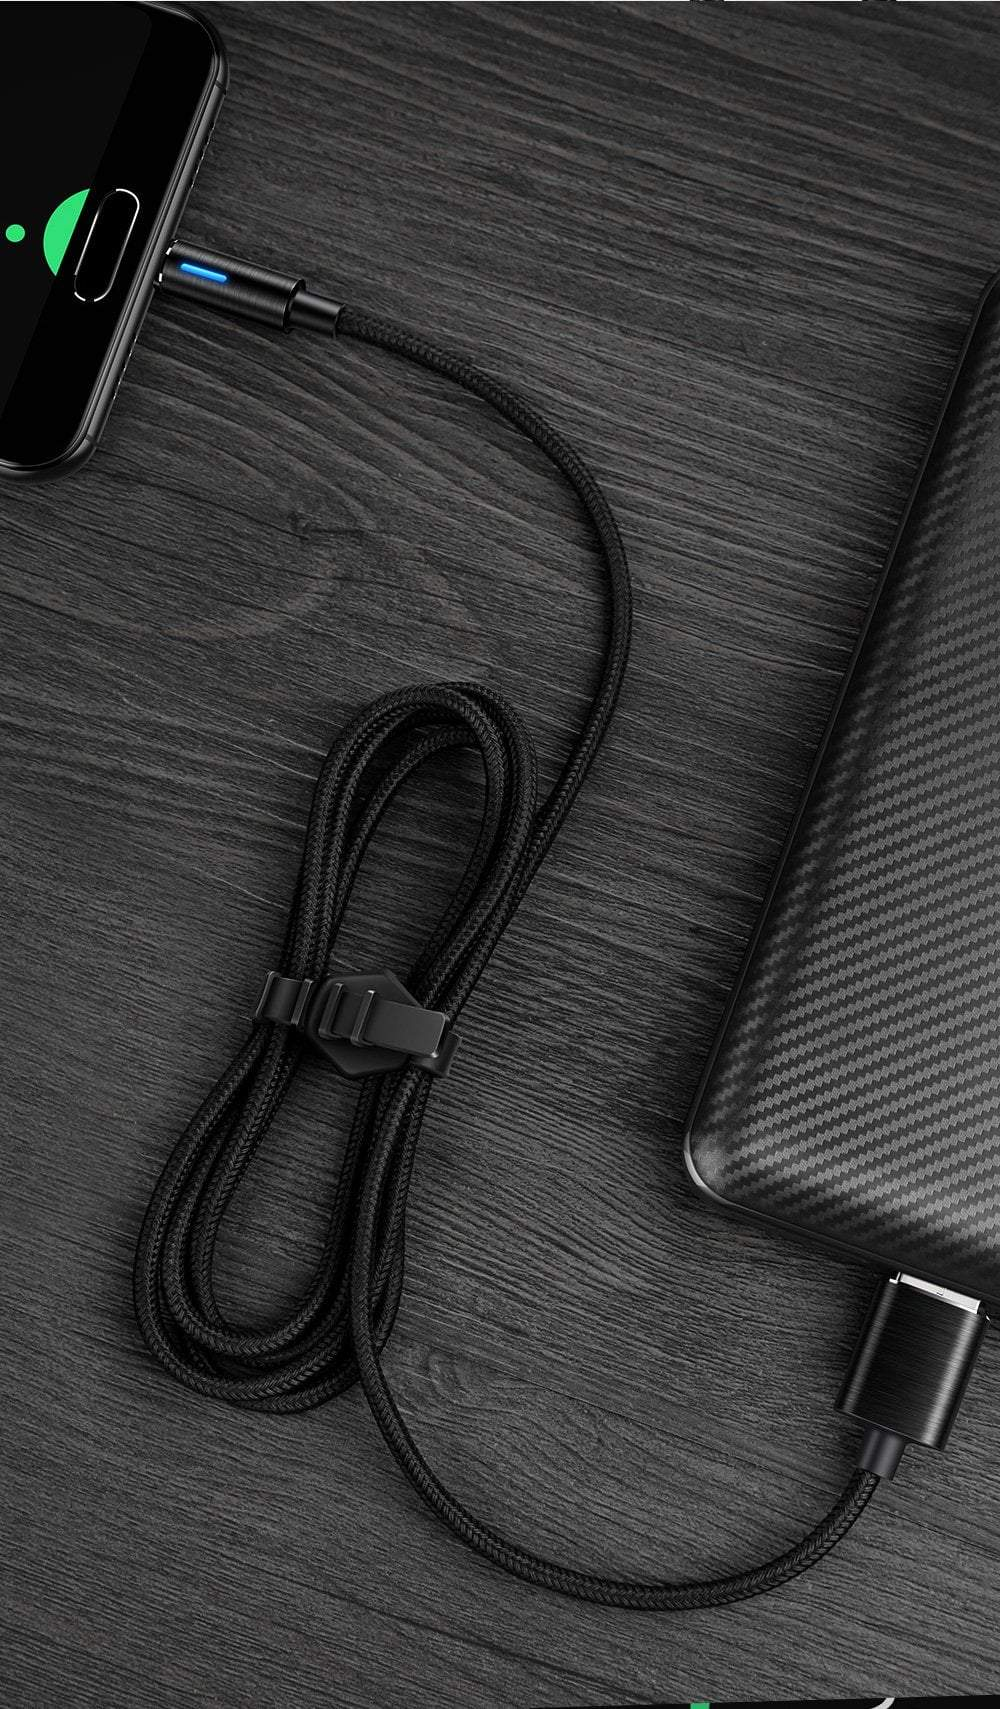 McDodo USB-C Fast Charging Auto Disconnect & Reconnect - Mcdodo Worldwide